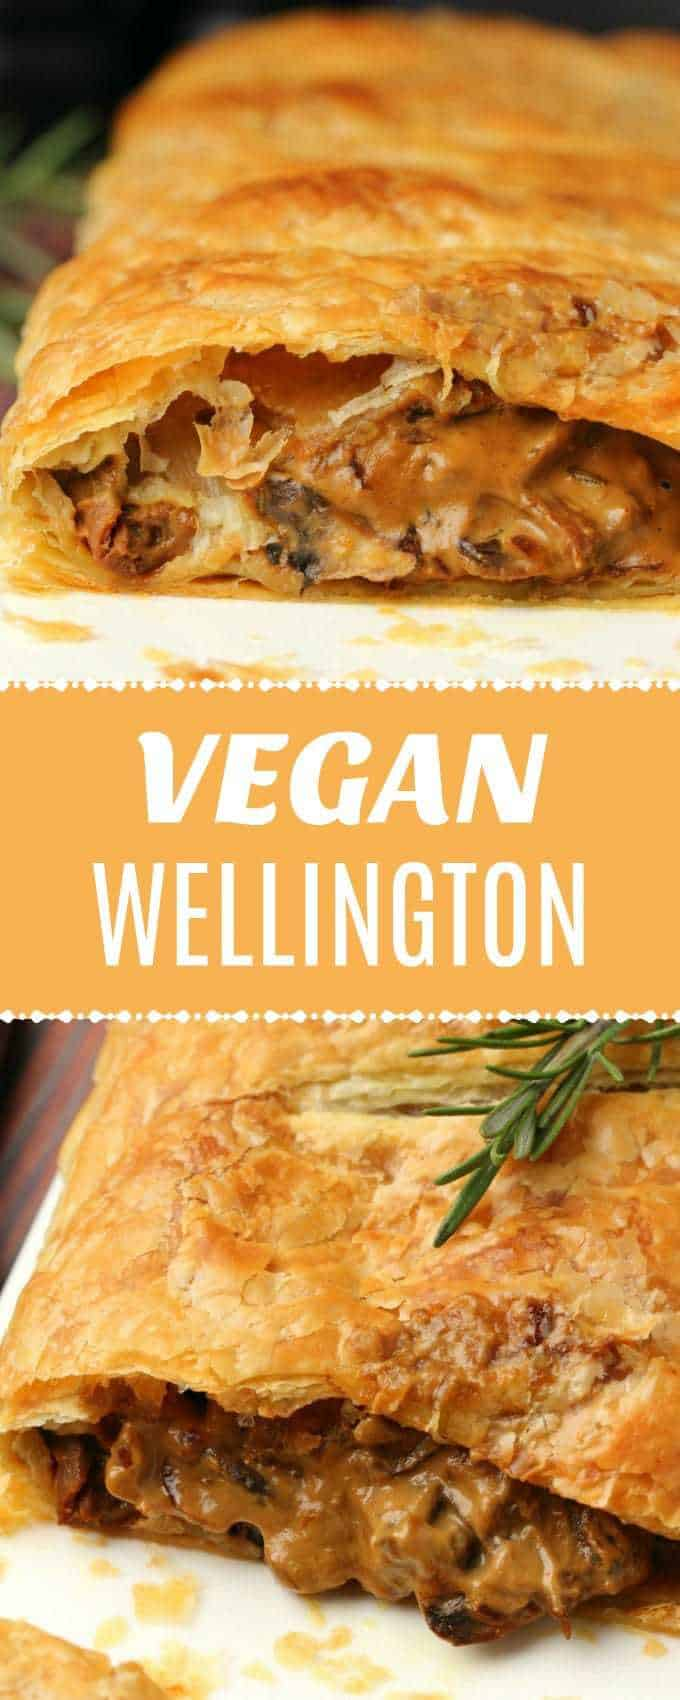 This vegan wellington is perfect for a special occasion. Creamy mushroom sauce wrapped in deliciously flaky puff pastry. Simple and gorgeous. | lovingitvegan.com